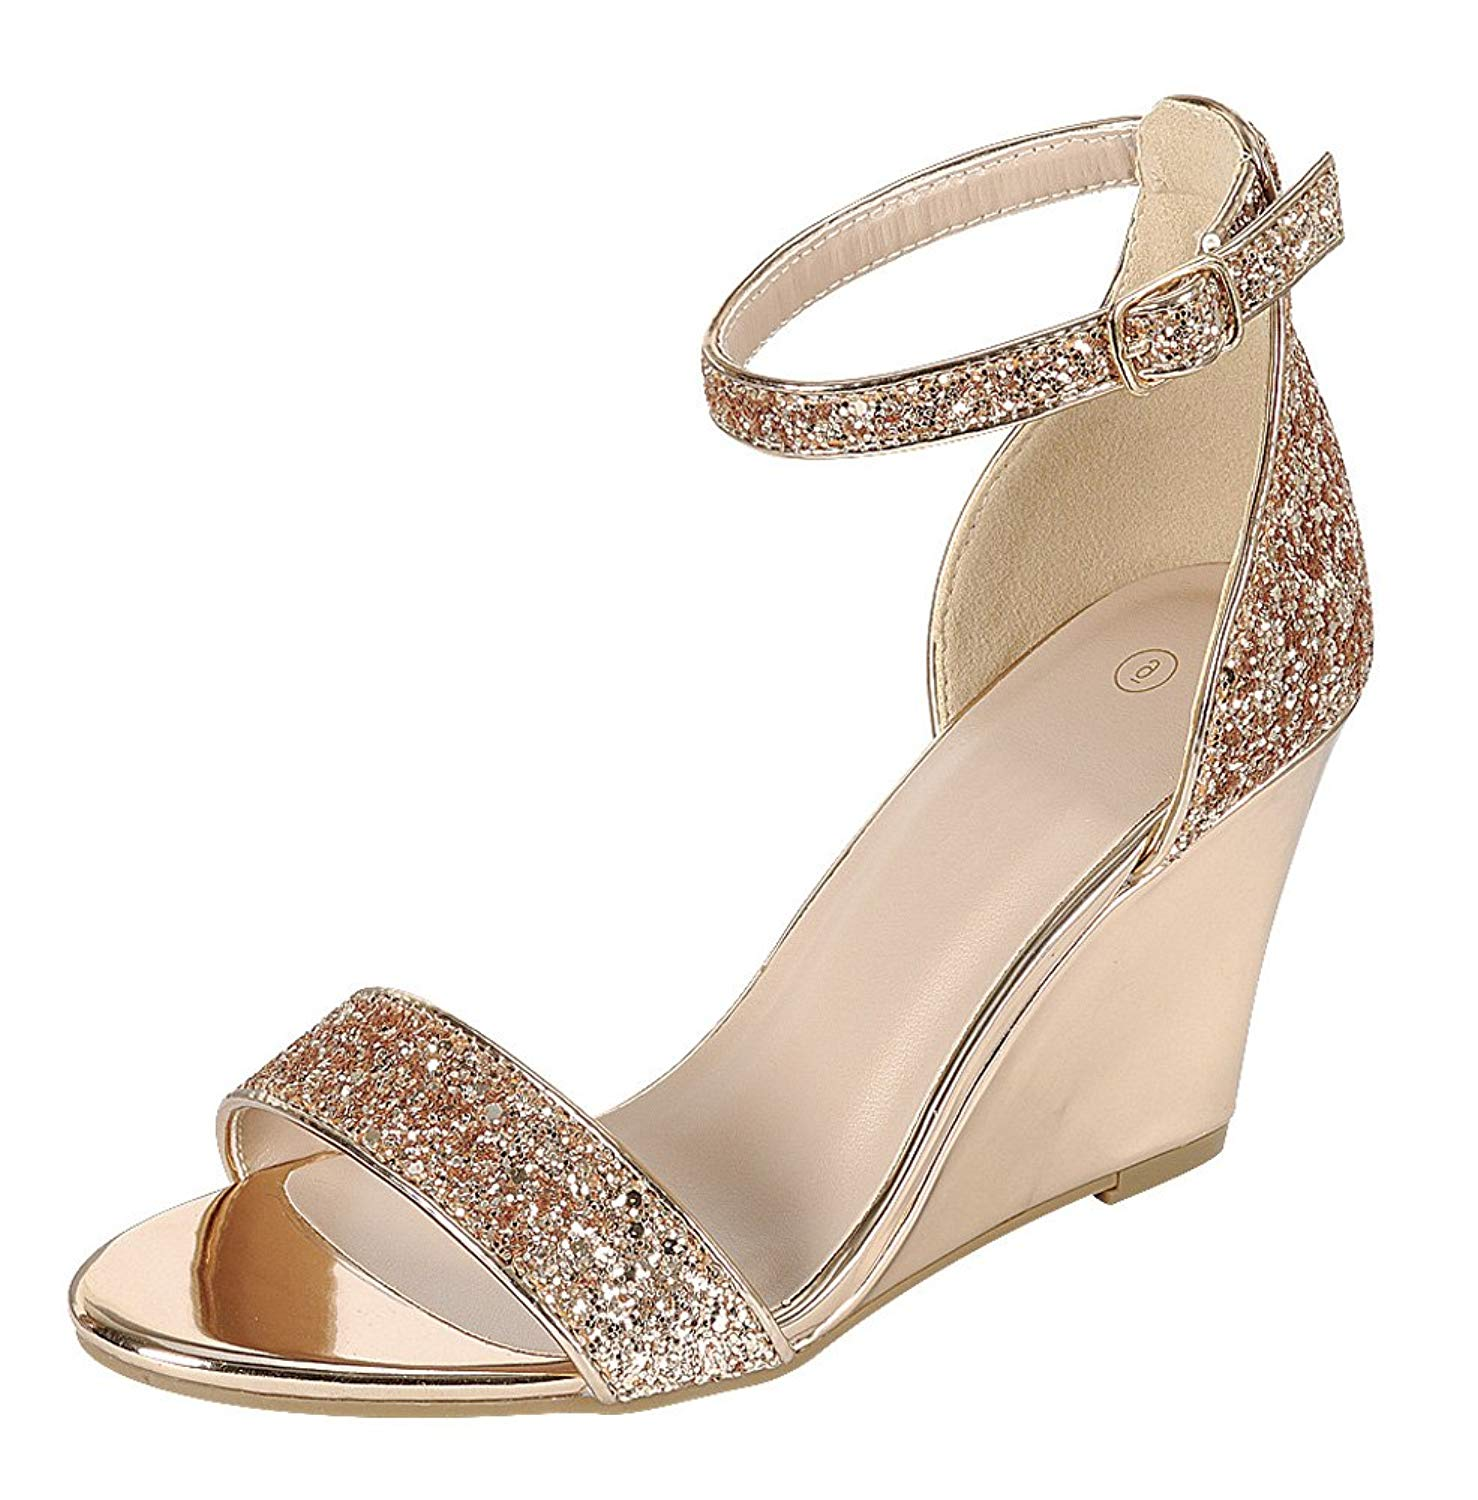 59de8f5d8213b9 Get Quotations · Cambridge Select Women s Open Toe Single Band Buckle  Strappy Ankle Glitter Dress Wedge Sandal